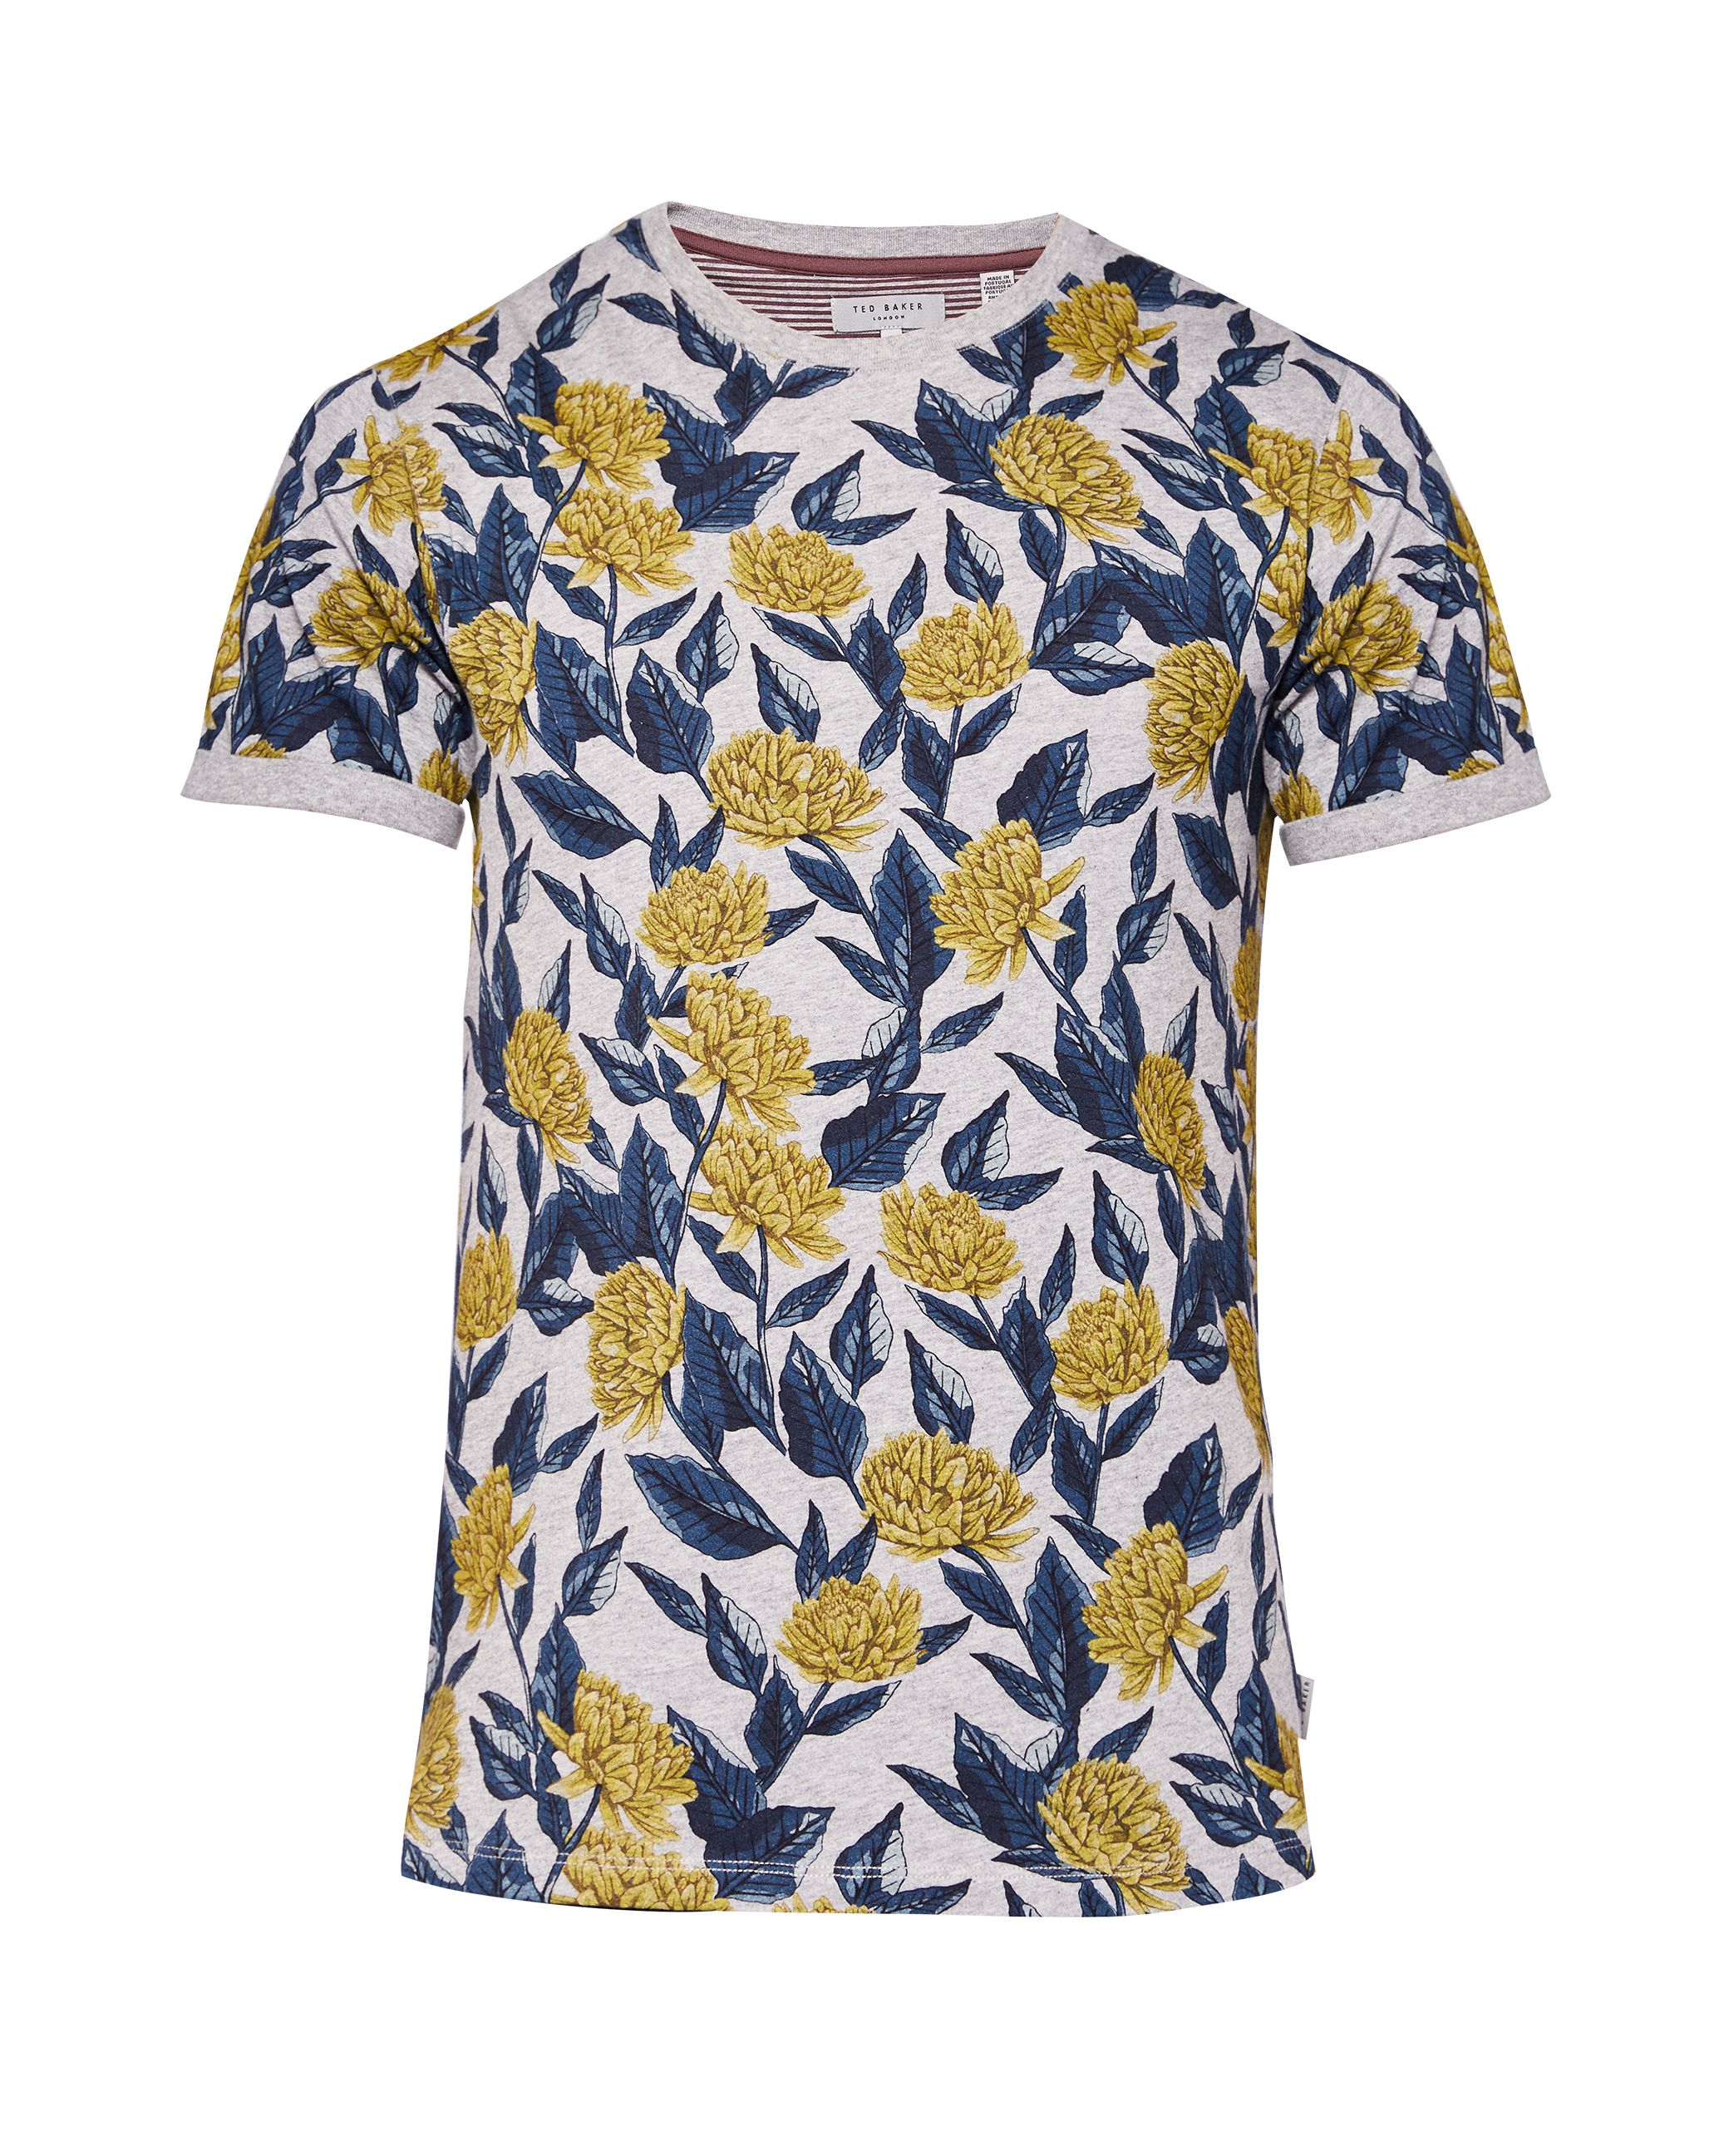 Men's Ted Baker Alfiee Floral Print Cotton T-Shirt, Grey